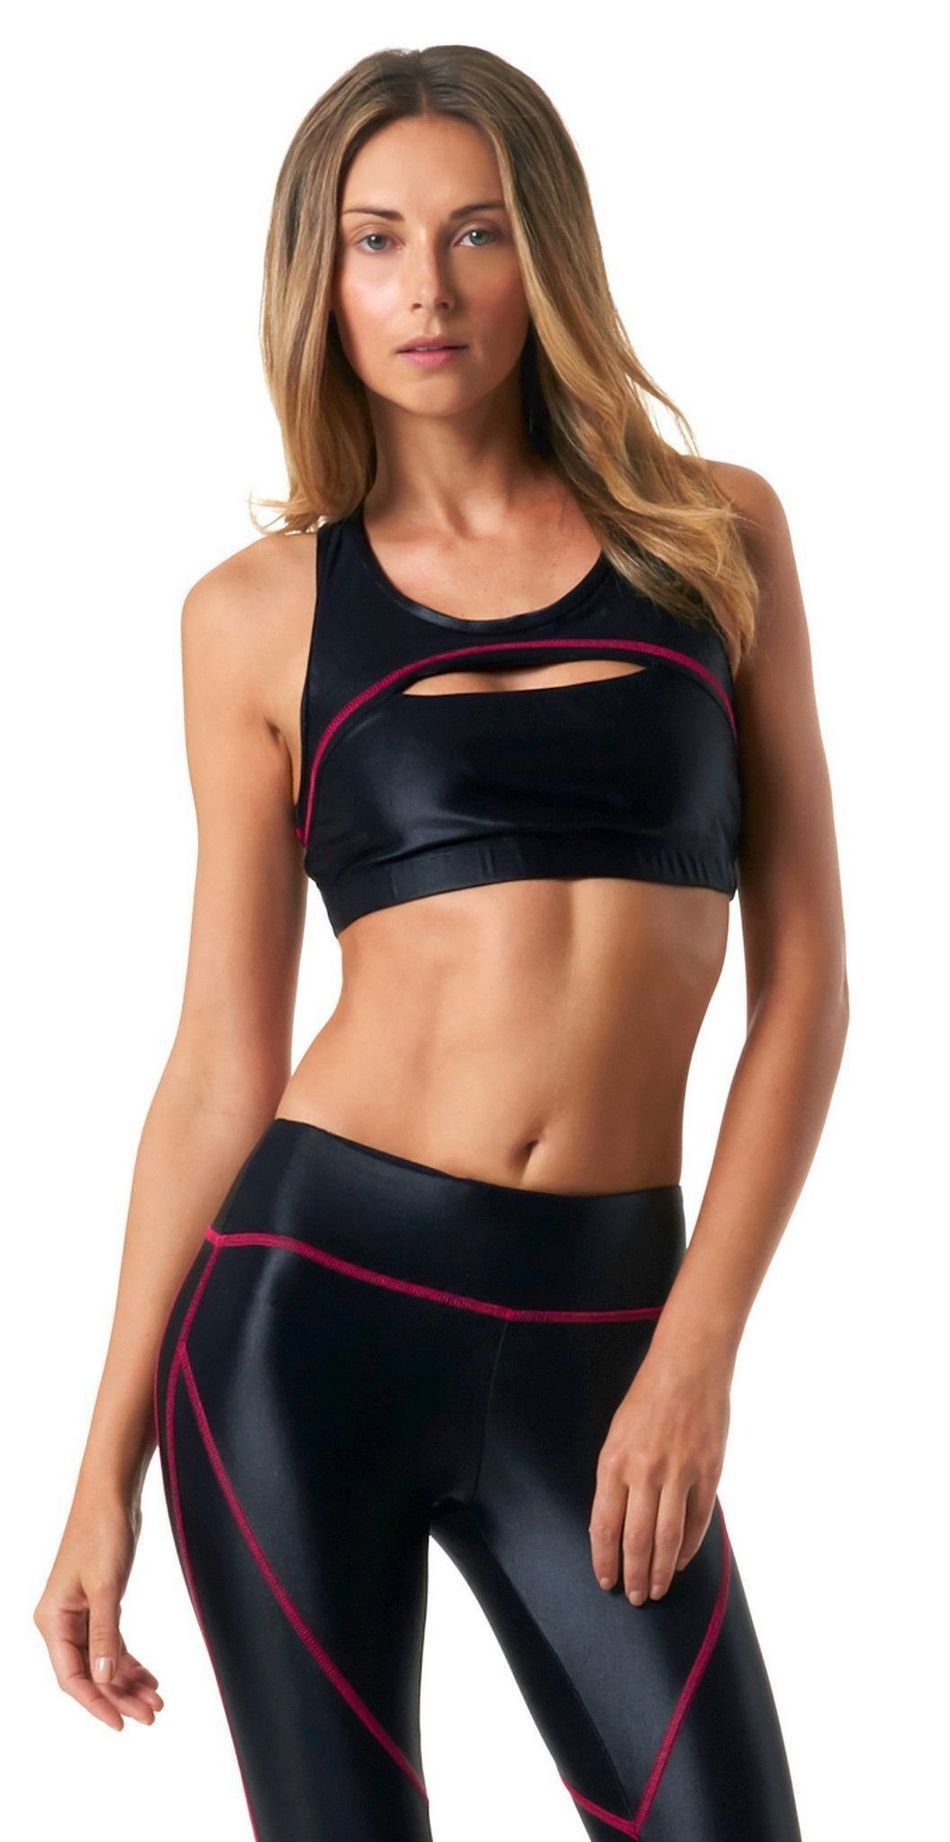 30 best of gym outfits for women that make you want to work out is part of Workout Clothes For Women - Gym outfit for women   When it has to do with women's exercise clothes, the trend is the exact same  Therefore, women can determine the best characteristics of fitness attires and find why it's expensive  They have the broad range of… Continue Reading →